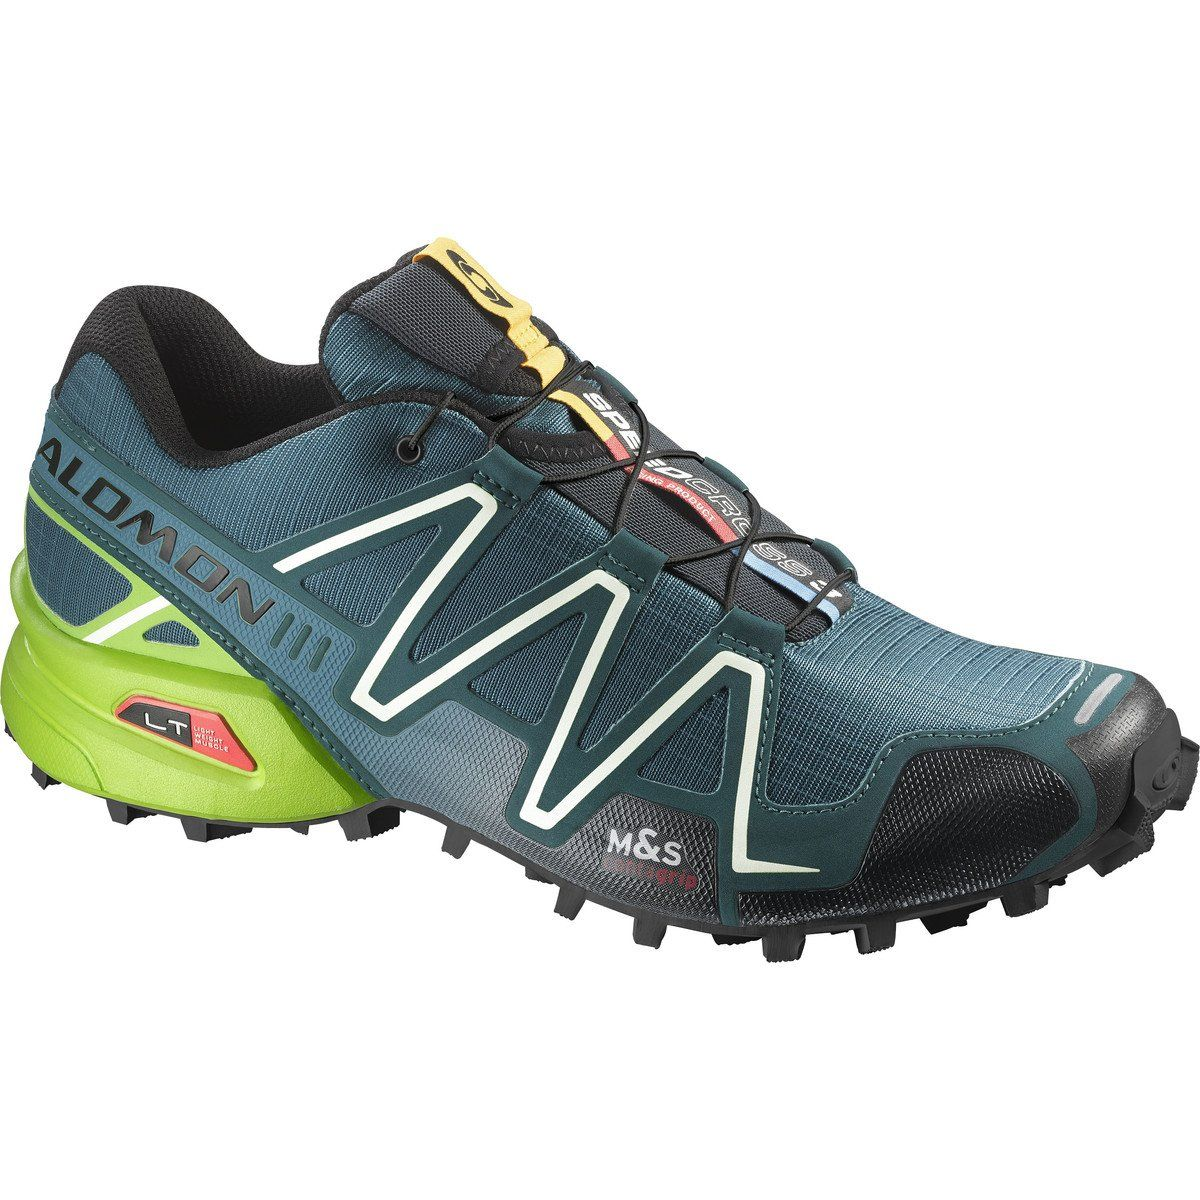 half off 5283a 98180 Salomon Men s Speedcross 3 Mountain Trail, Cobalt Blue Granny Green Black,  7 M US